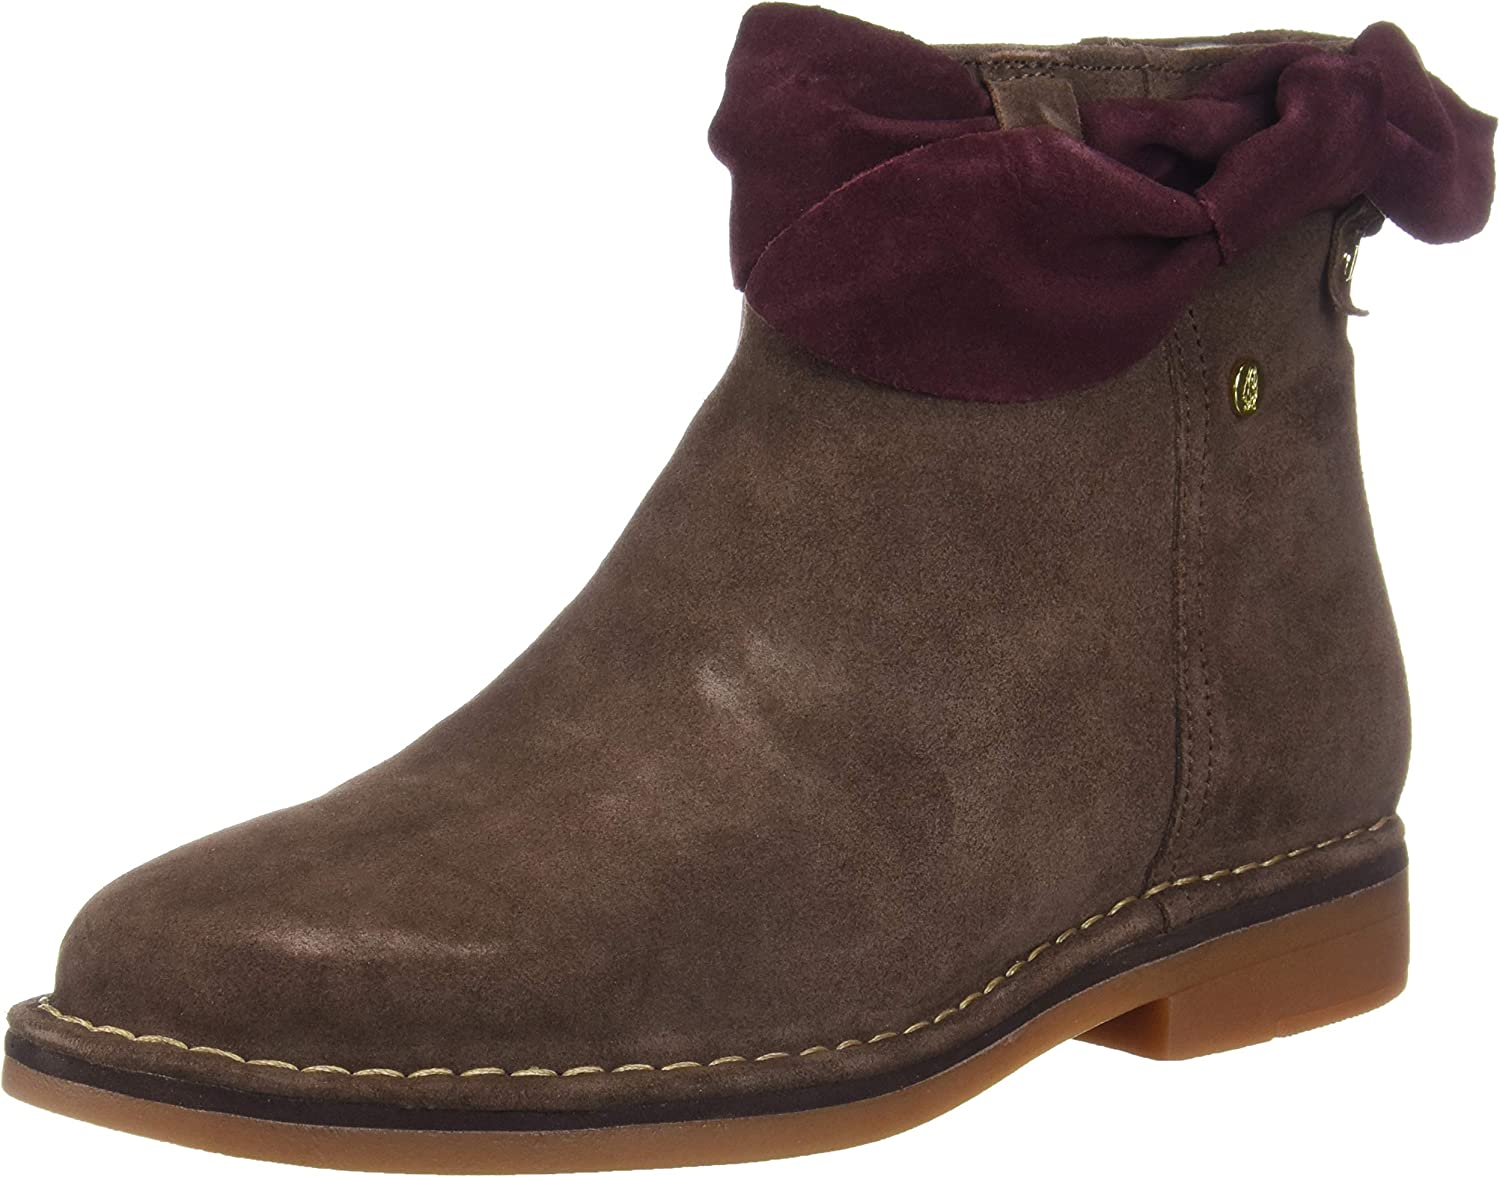 Hush Puppies Womens Catelyn Bow Boot Chelsea Boots